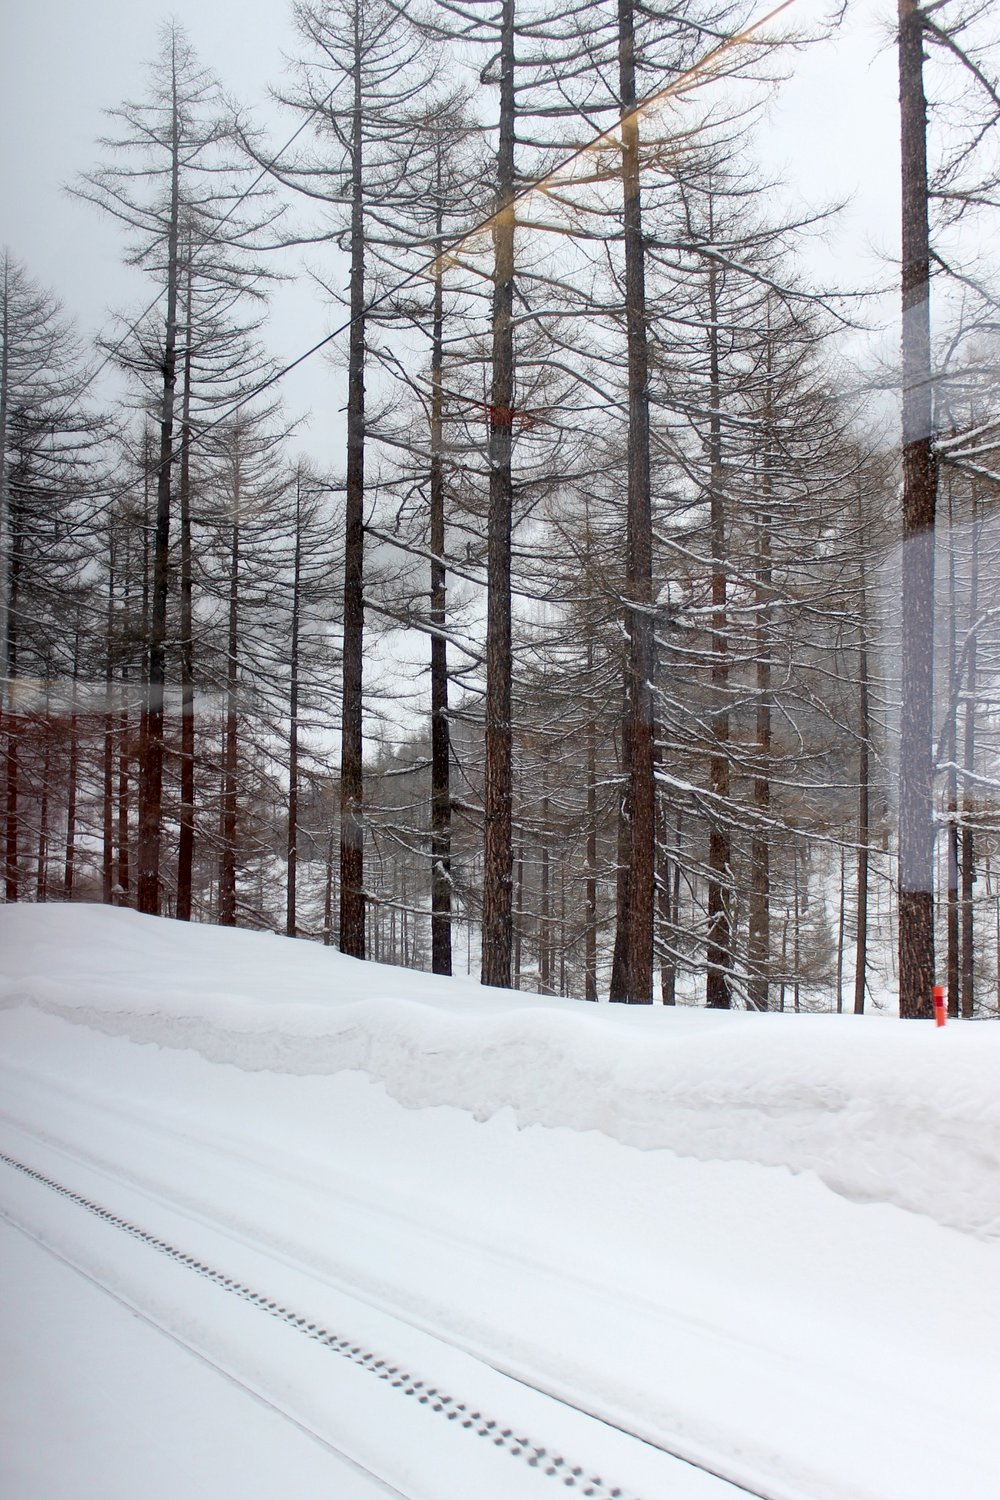 snow-train-tasch-zermatt-trees.jpg